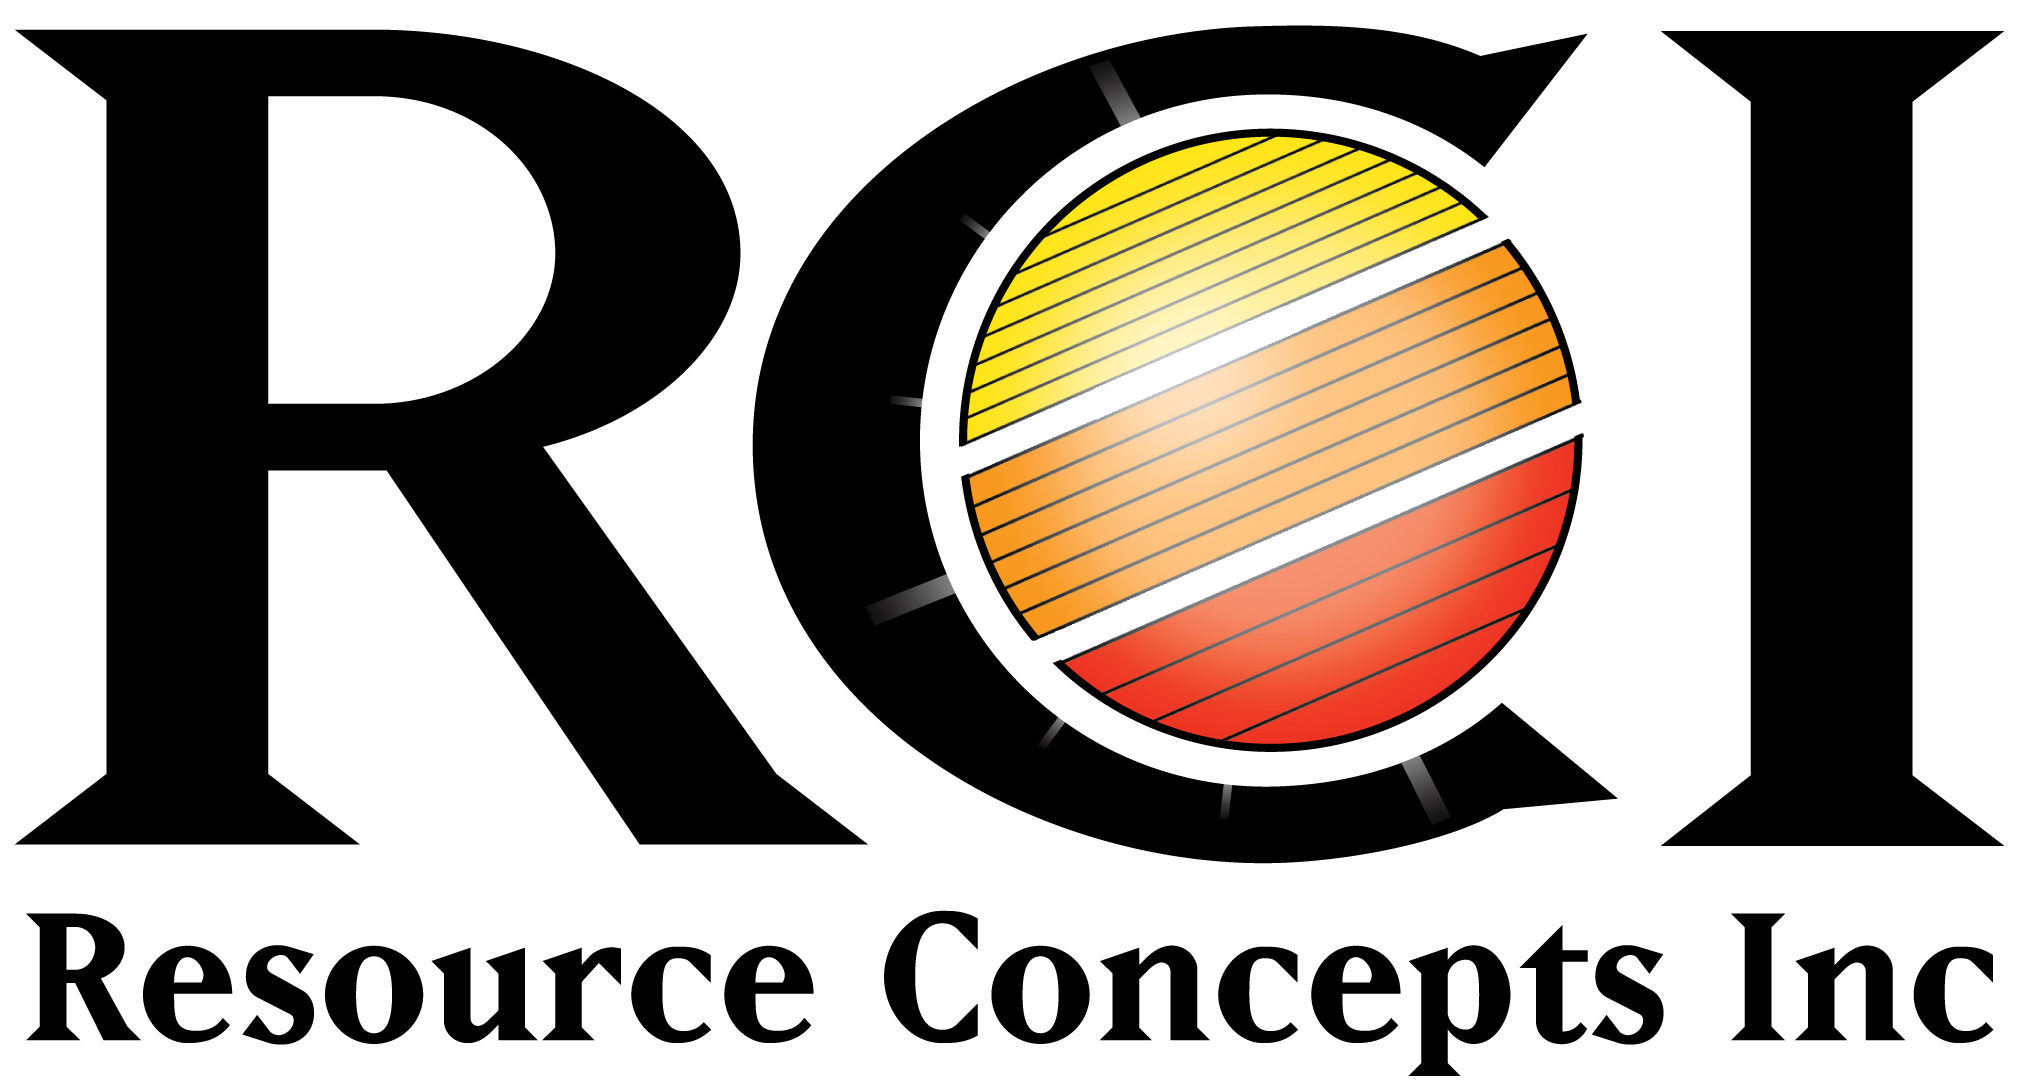 Resource Concepts Inc..JPG